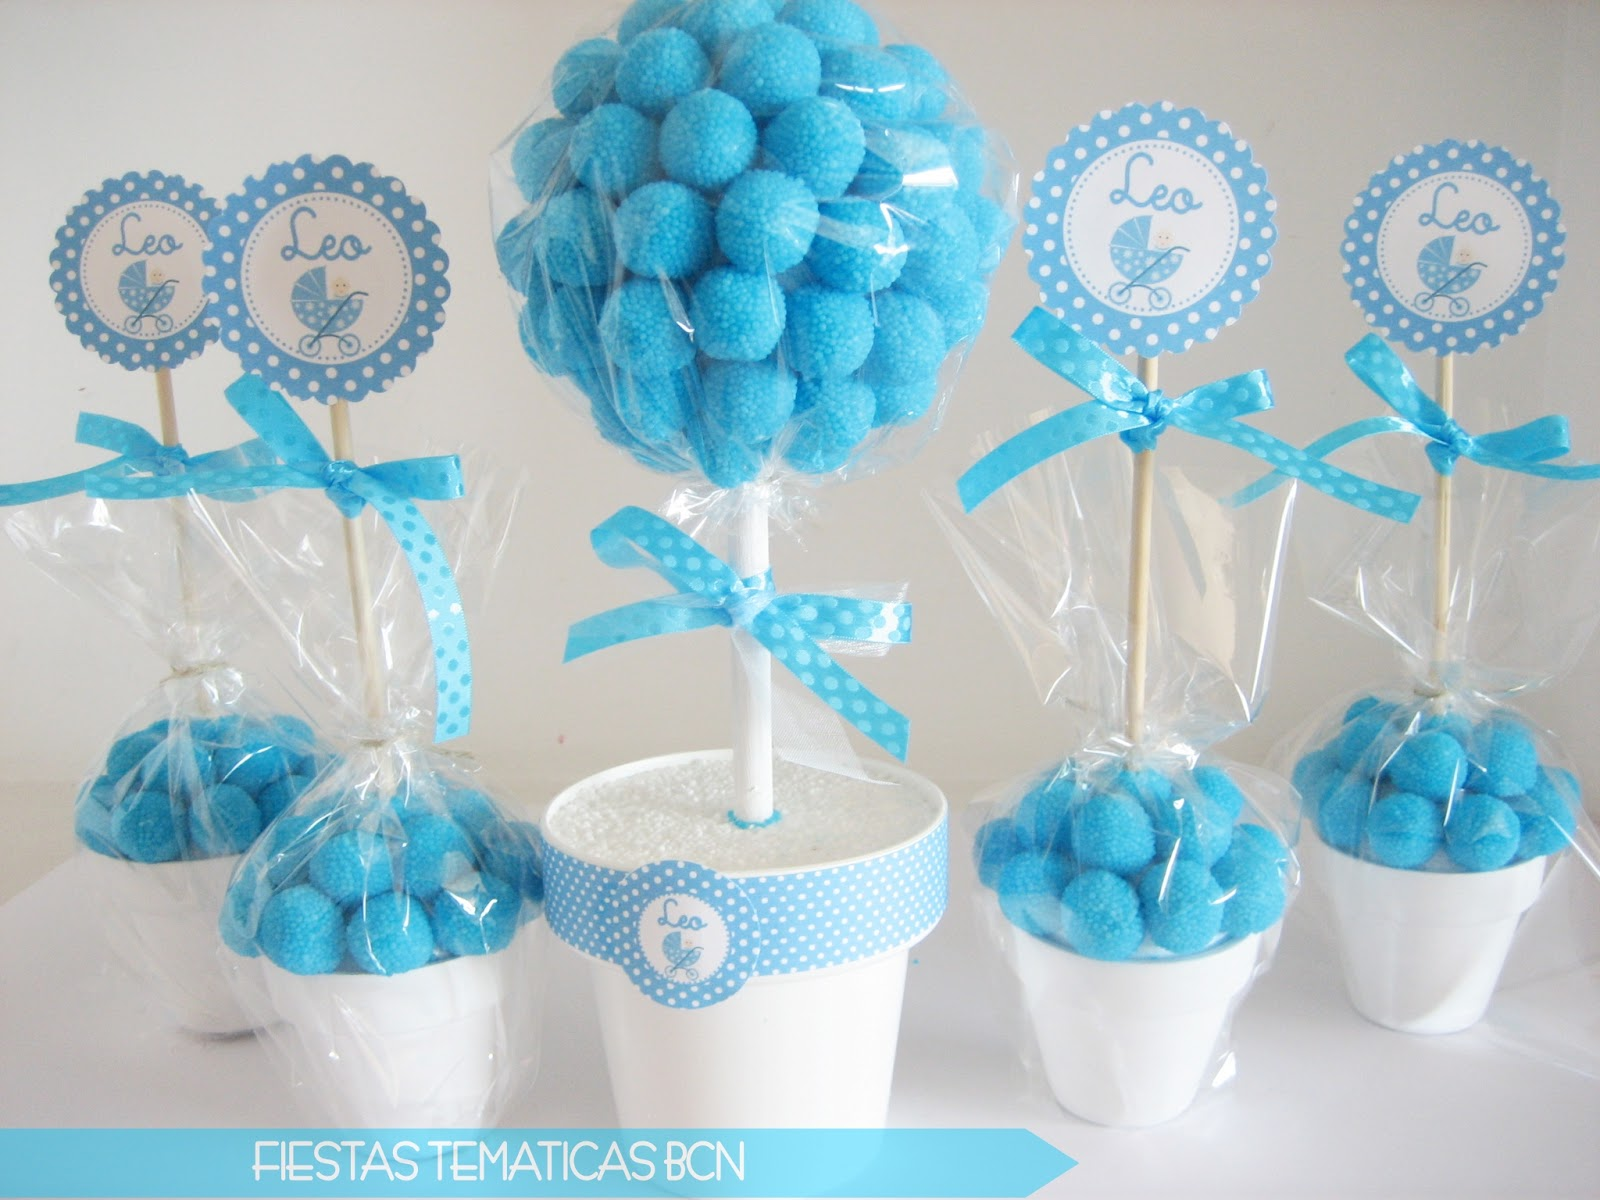 Fiestas tem ticas bcn kits de fiesta imprimibles for Decoracion para baby shower en casa